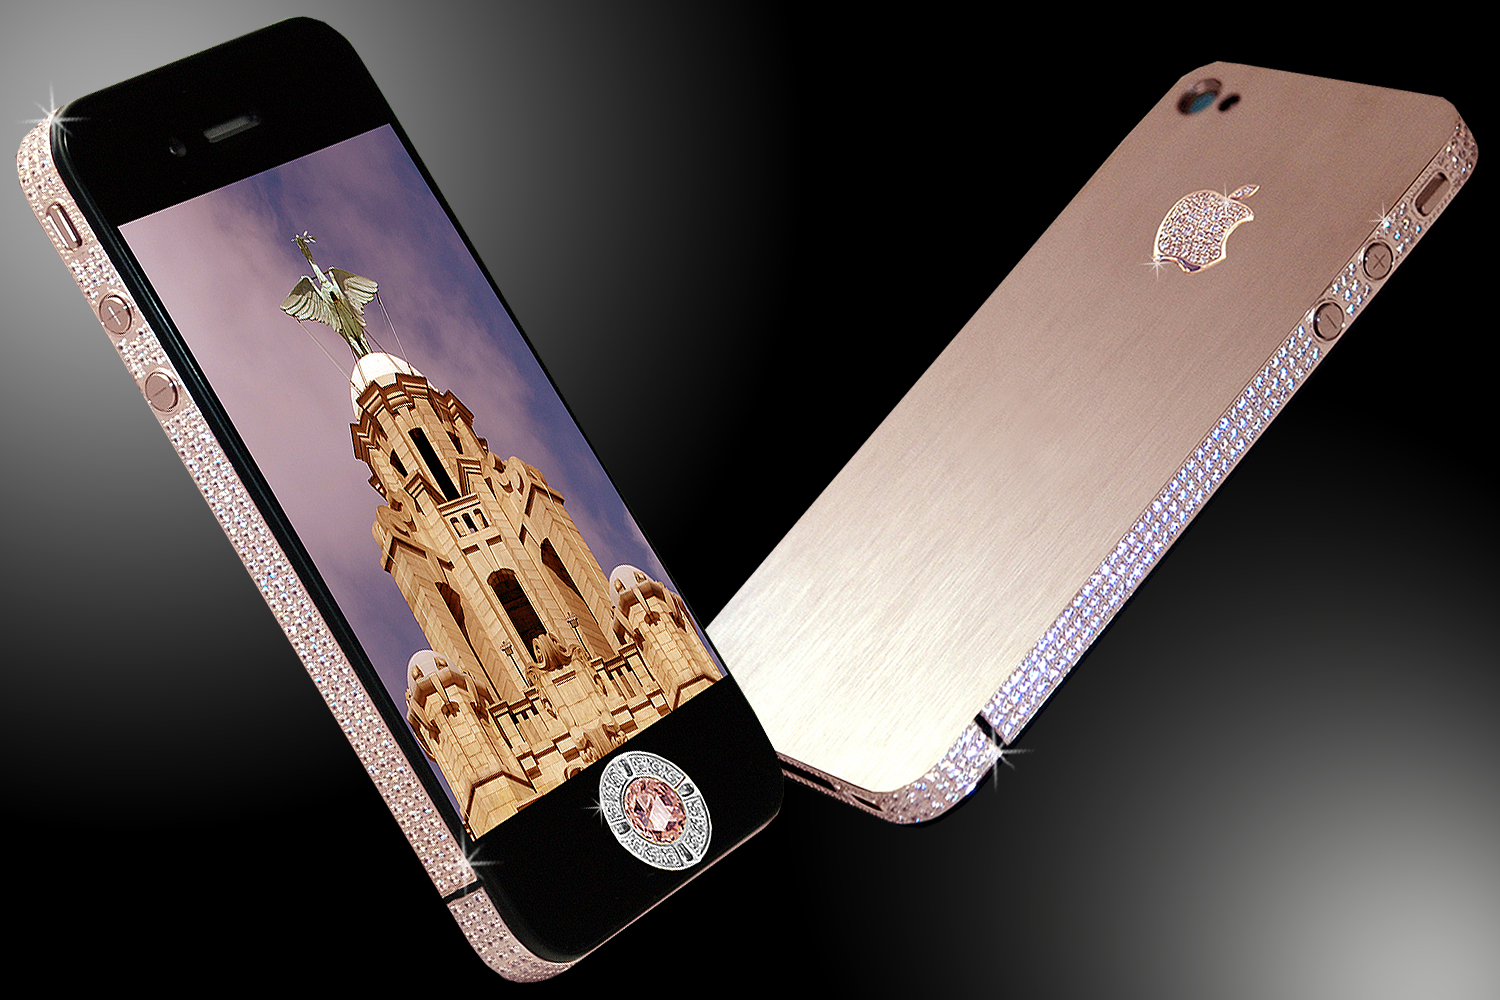 Le The Diamond Rose iPhone 32 GB